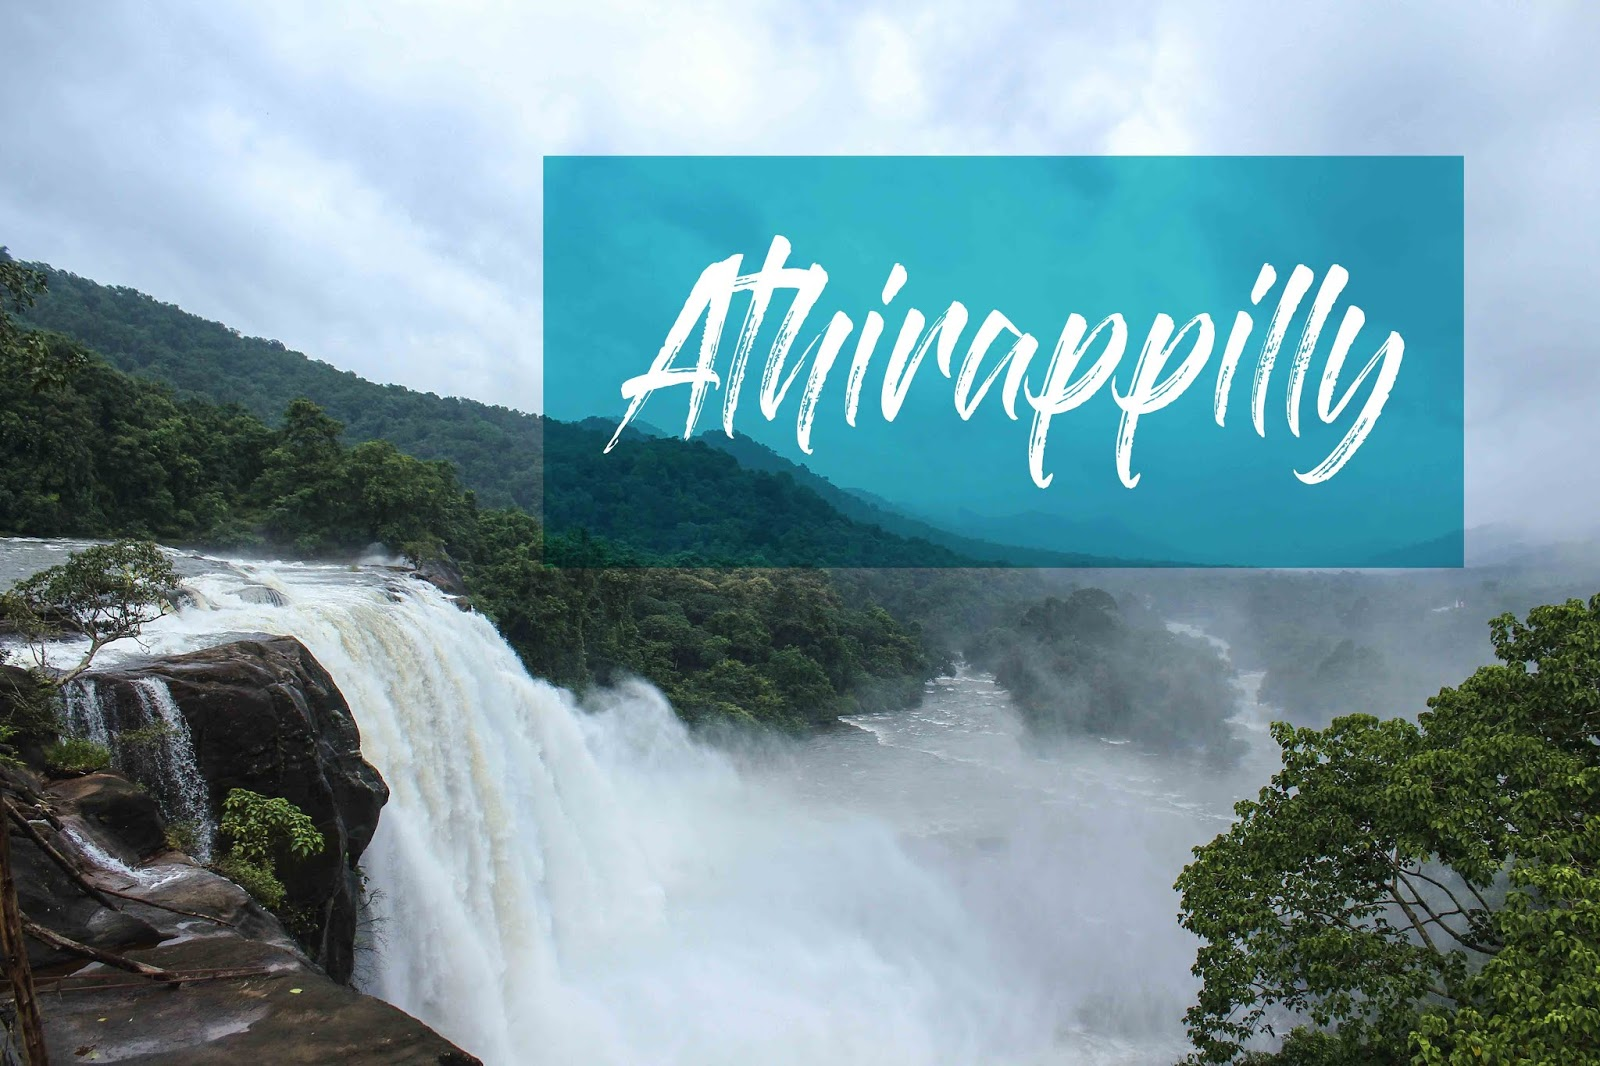 Kerala Travel Guide - Athirapally